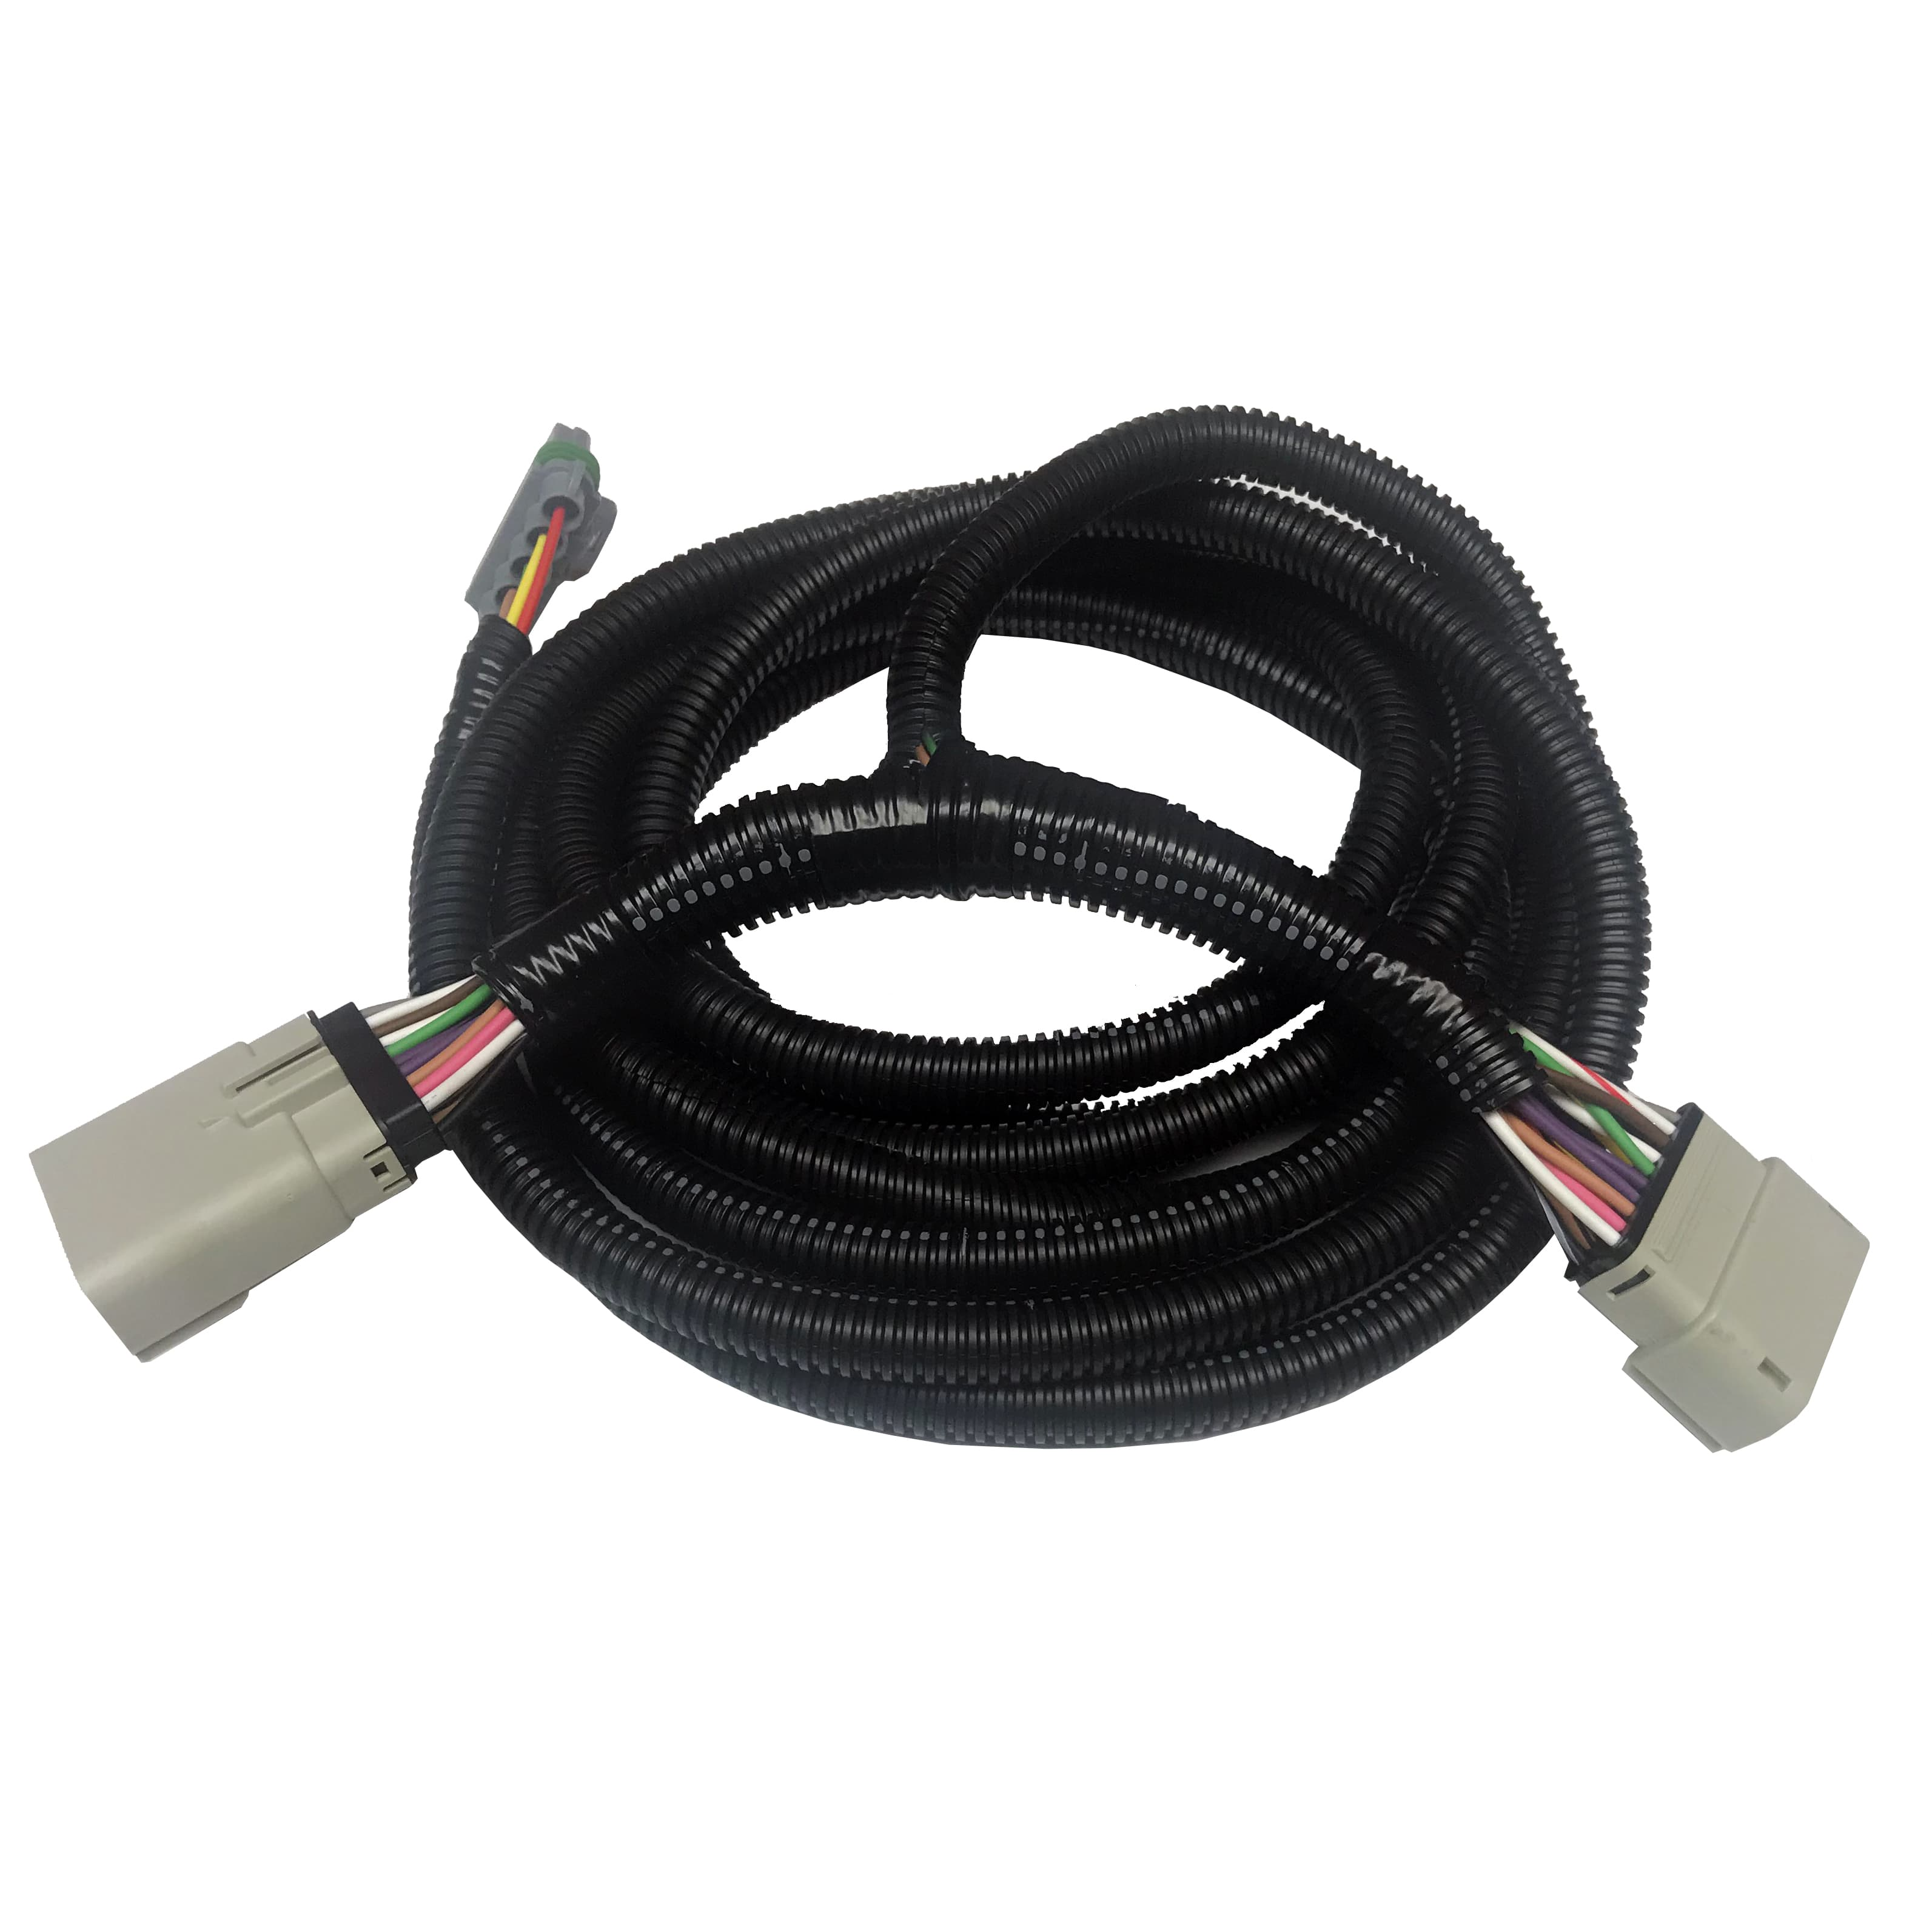 Enjoyable 10 Modular Plug N Play Wire Harness For Current Body Style Ford Wiring Digital Resources Timewpwclawcorpcom